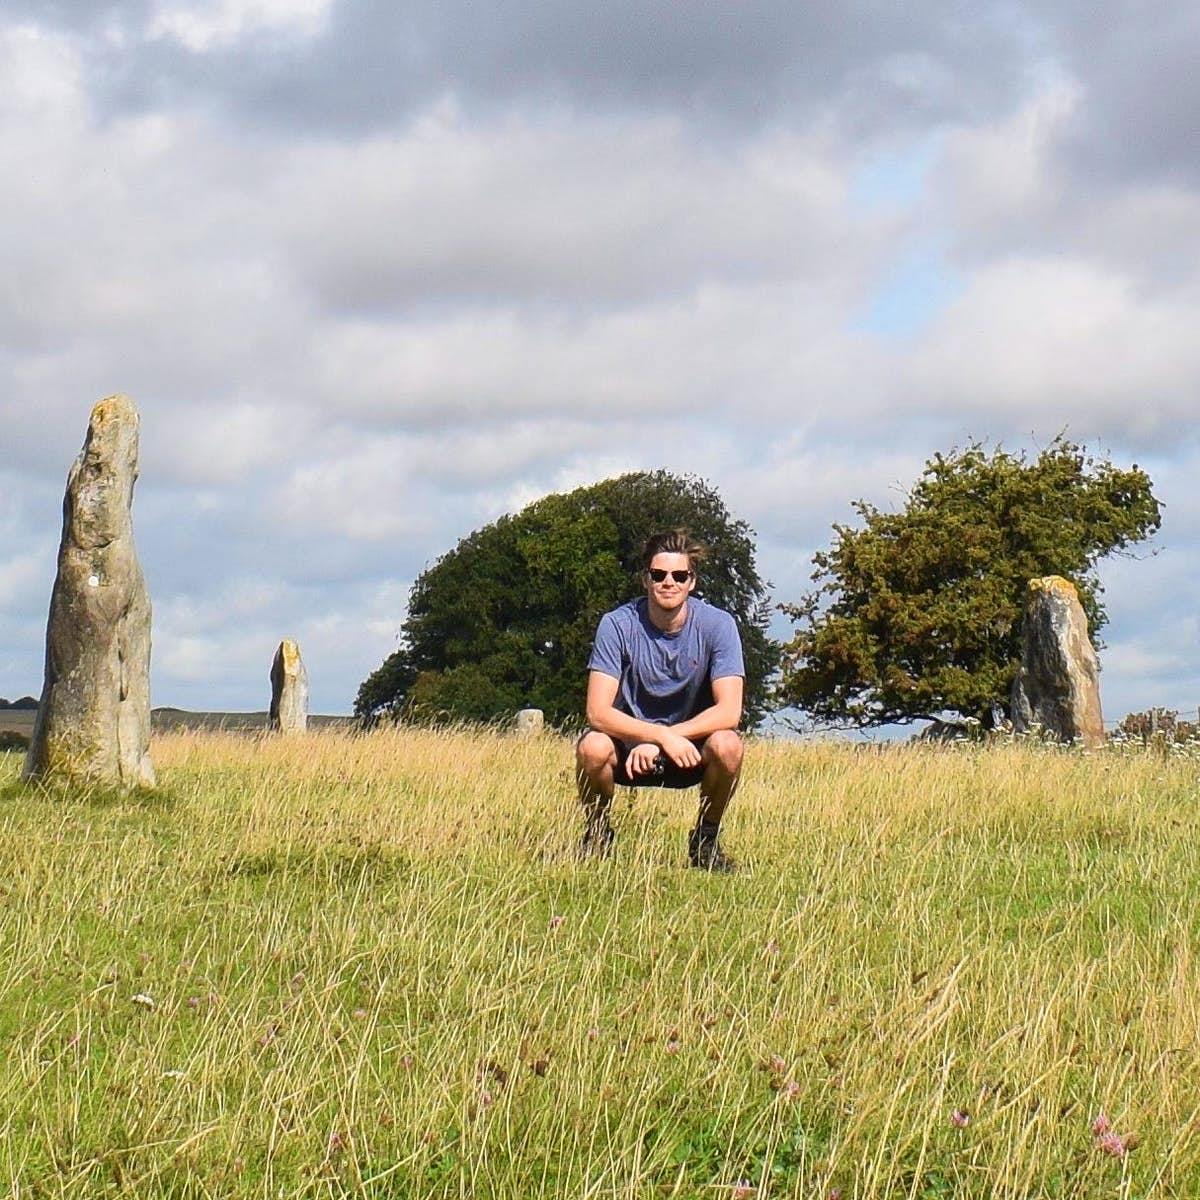 Walk through England's pagan past on the country's oldest road